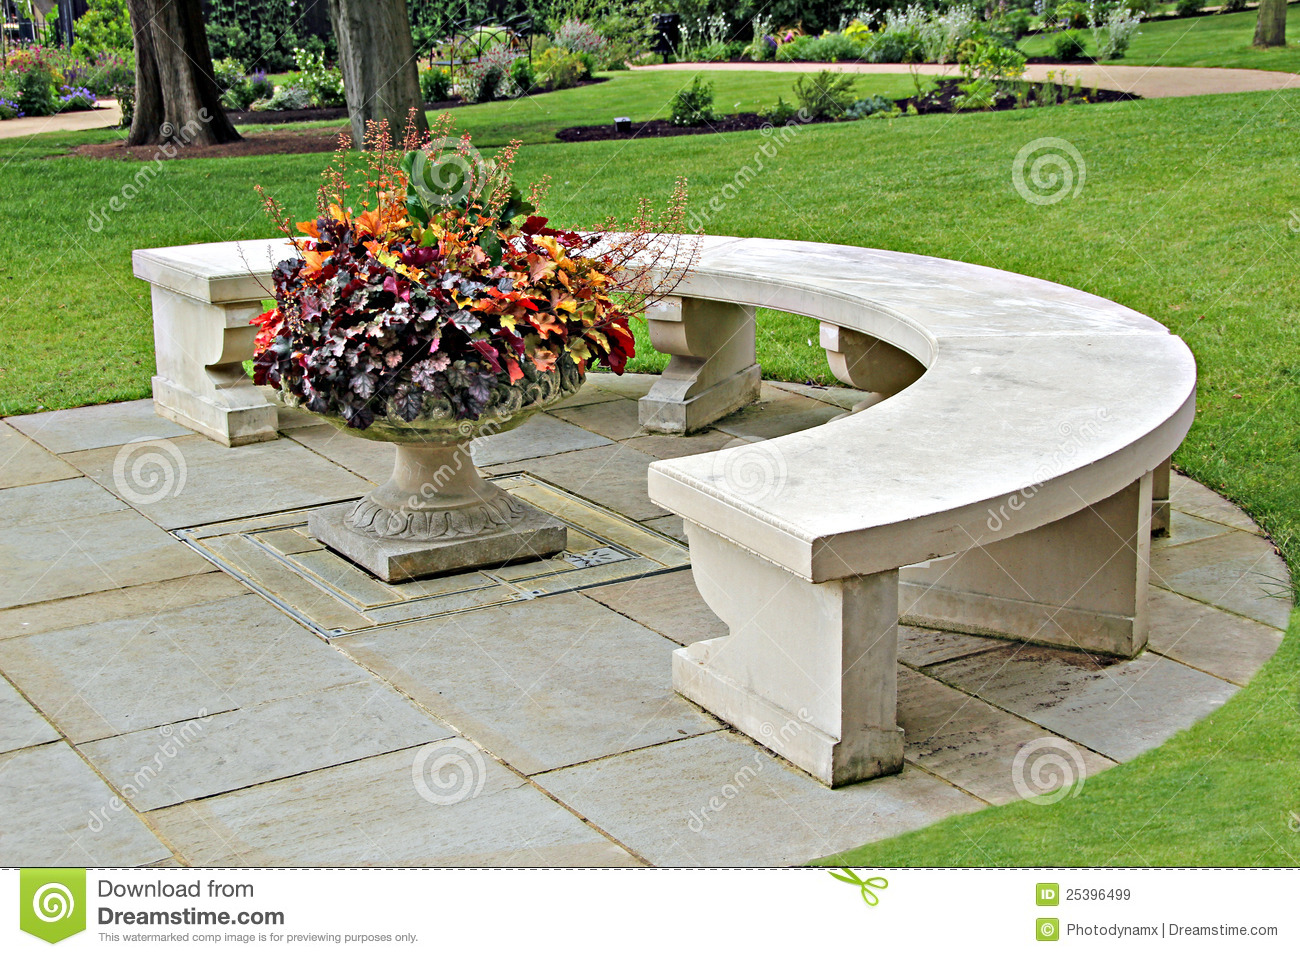 Ornamental Stone Bench Royalty Free Stock Images - Image: 25396499